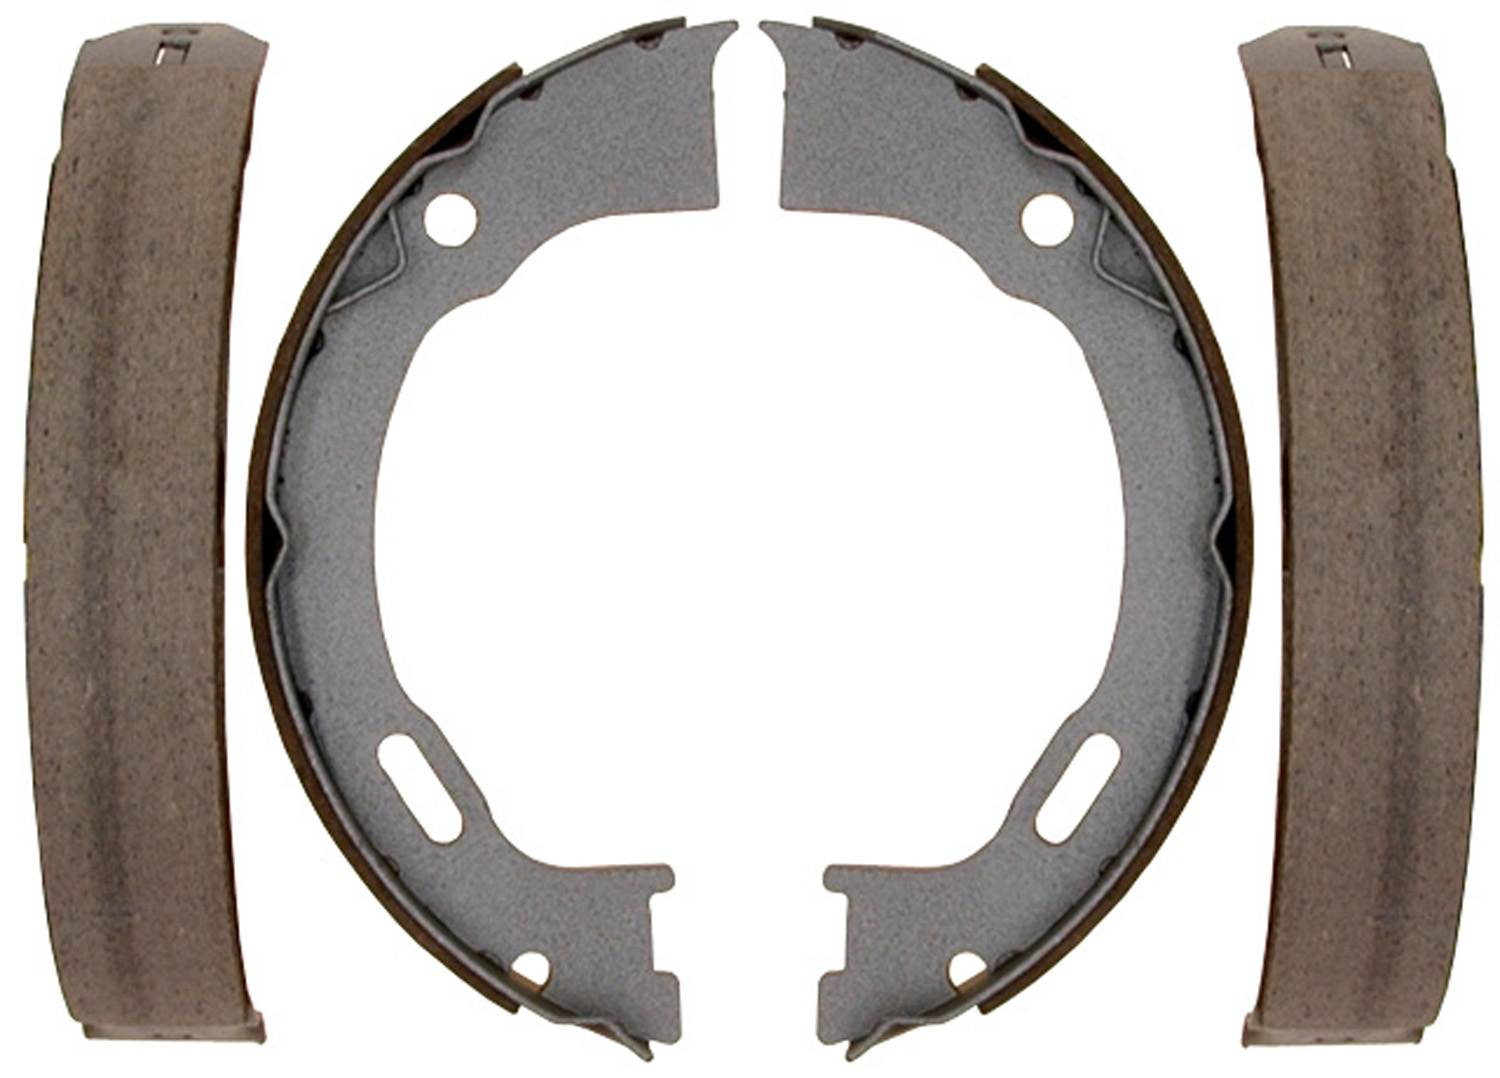 Brake Shoe Thickness In 32nds : Parking brake shoe bonded rear acdelco advantage b